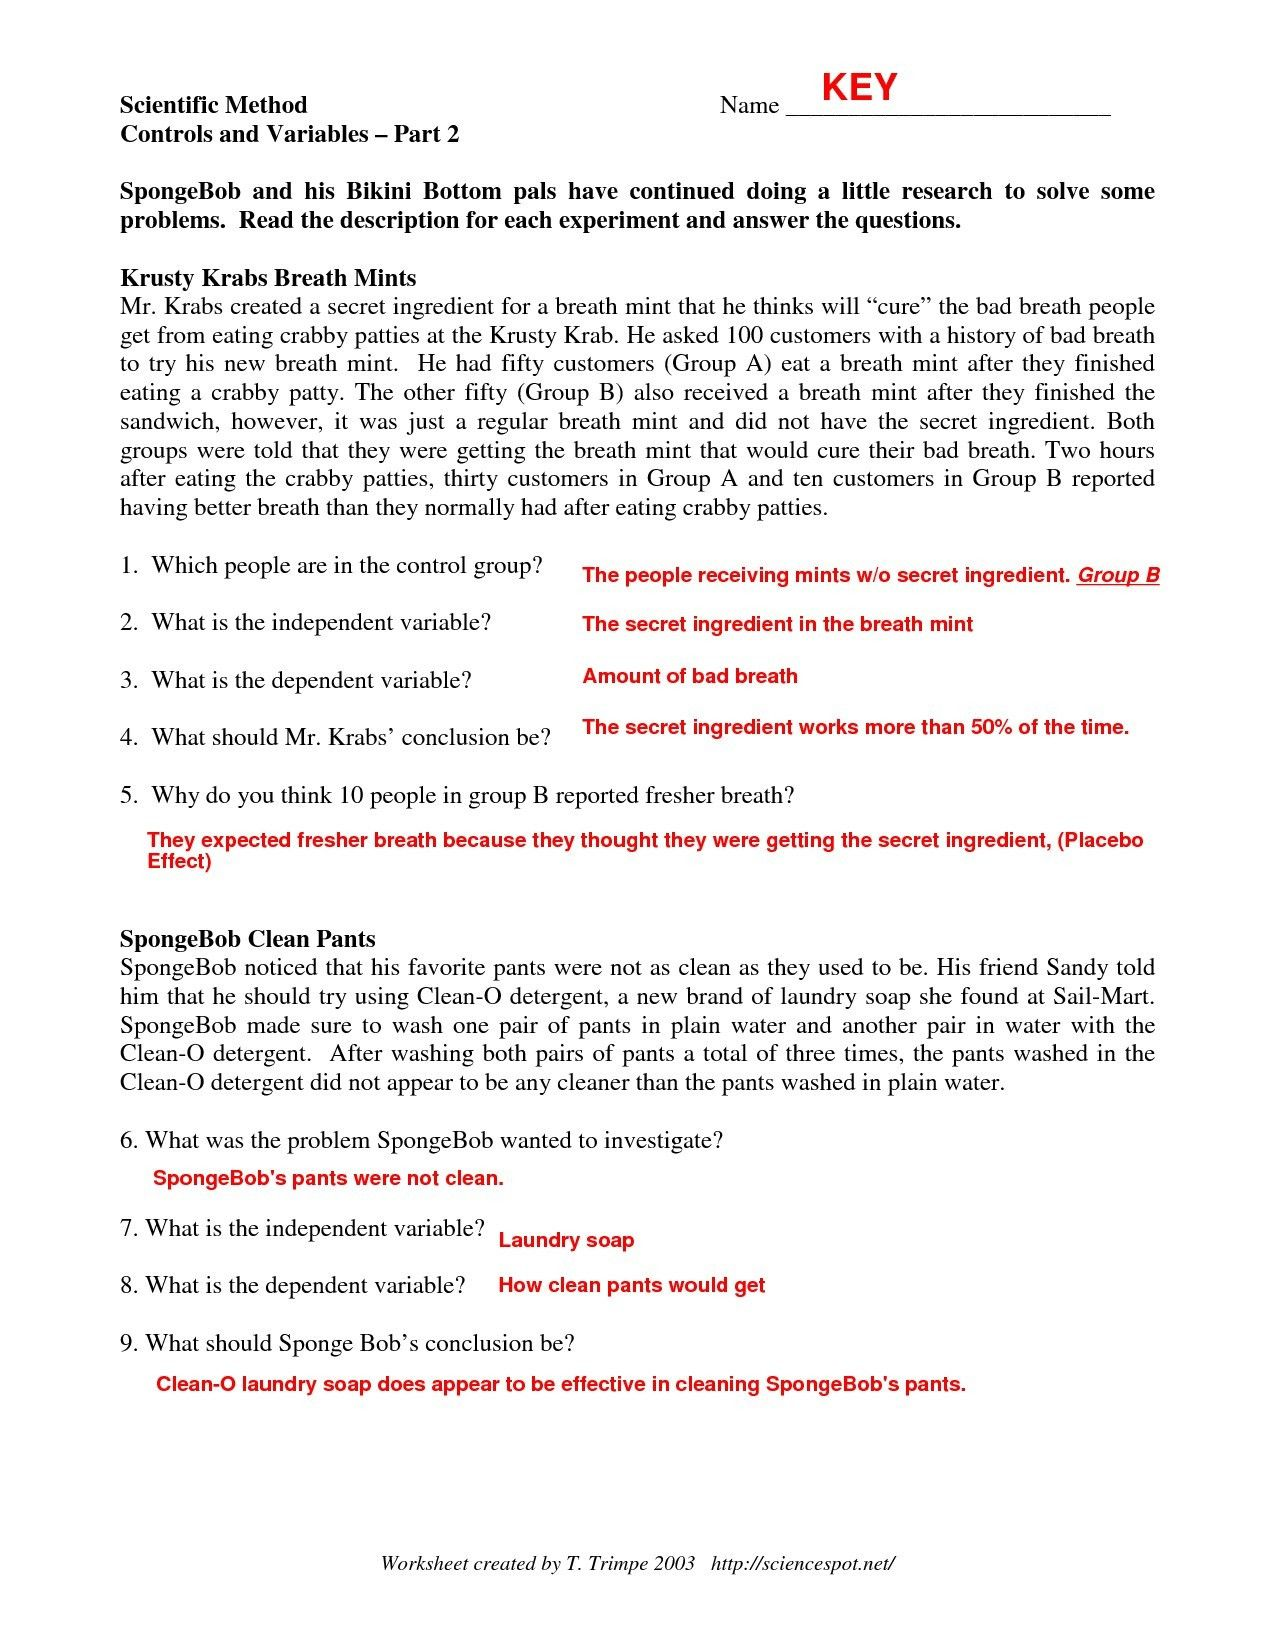 Scientific Method Worksheet 5th Grade